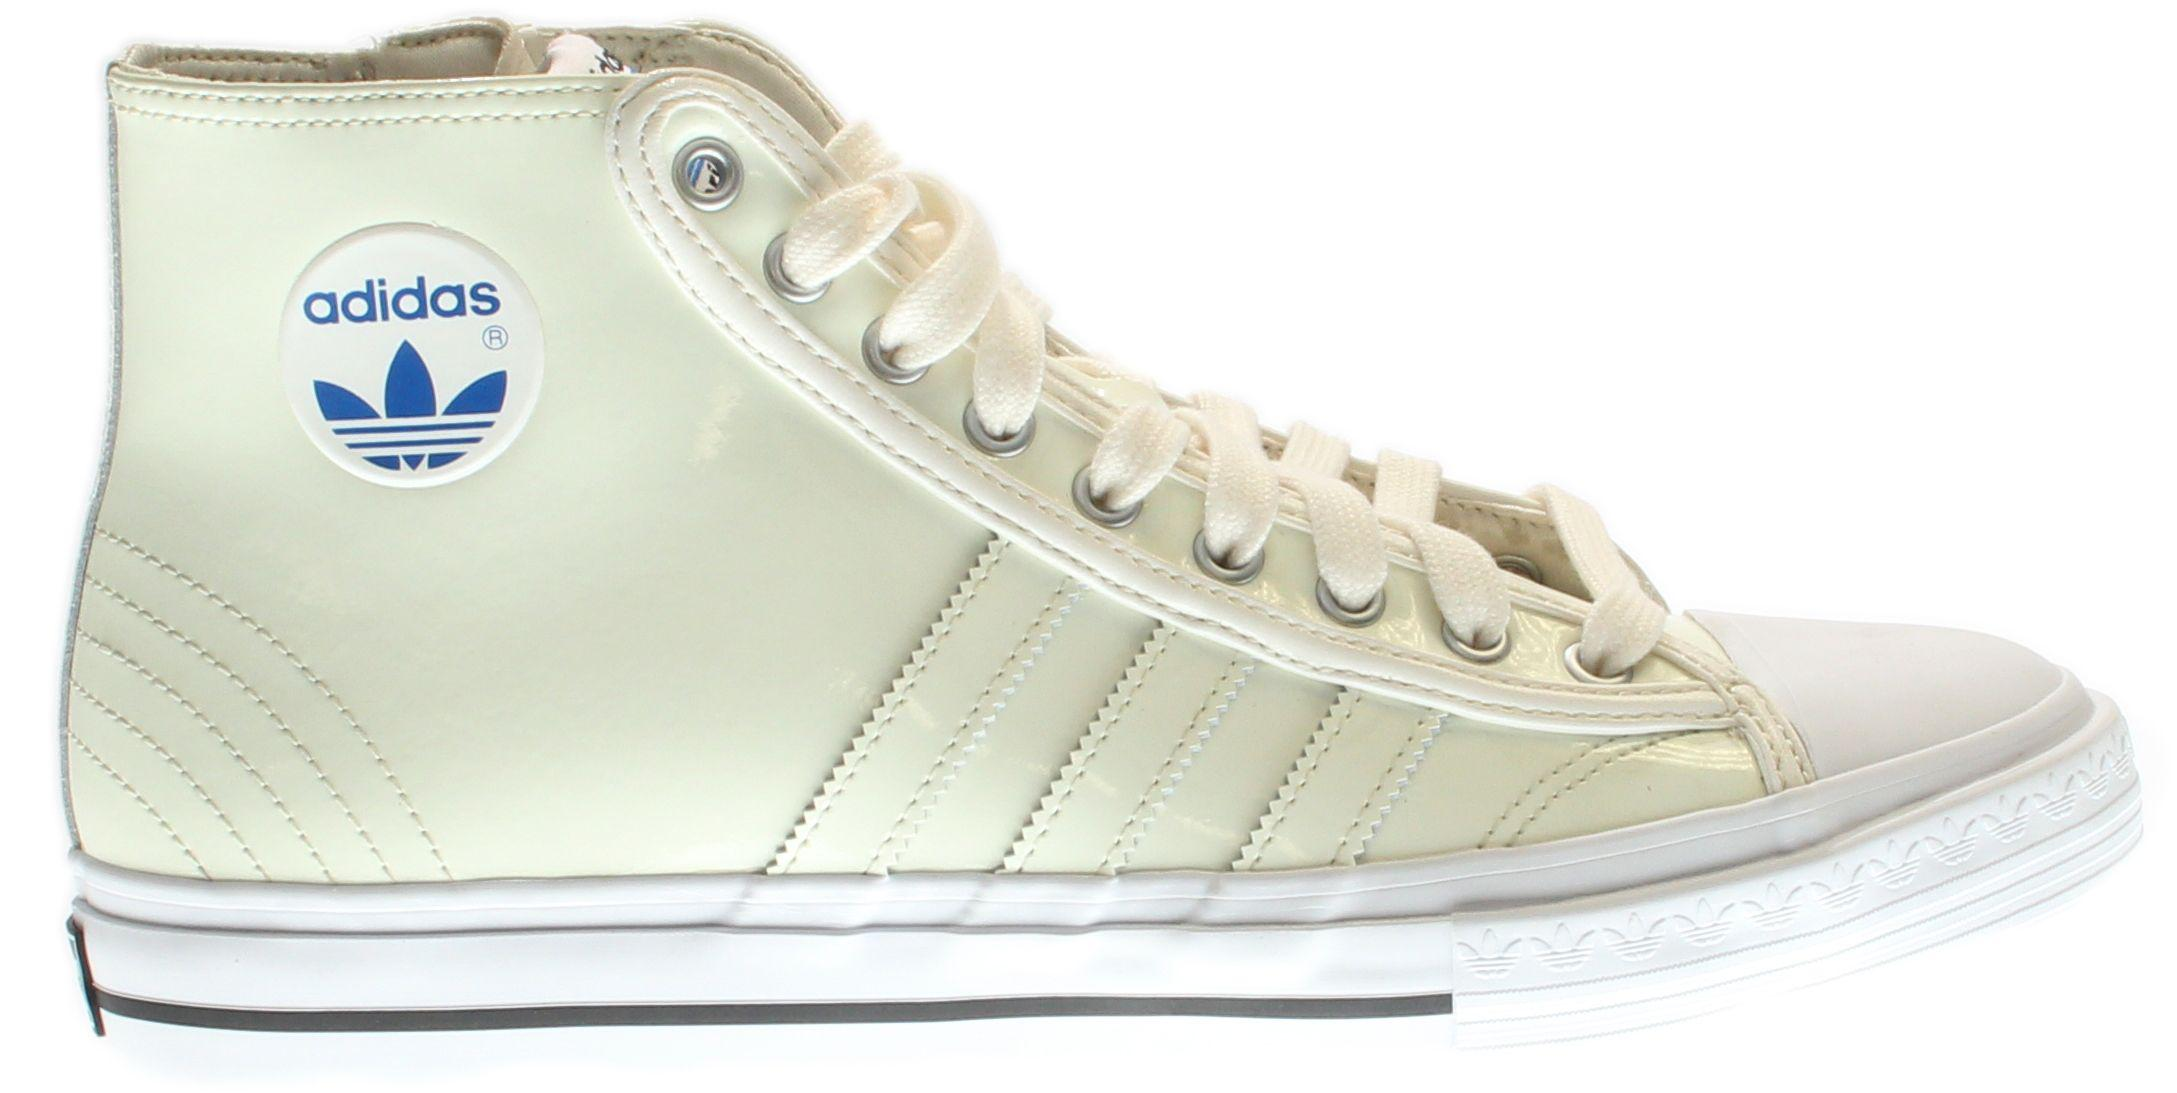 Lyst - adidas Originals Shooting Star Hi Nigo for Men 63736d9af7b34